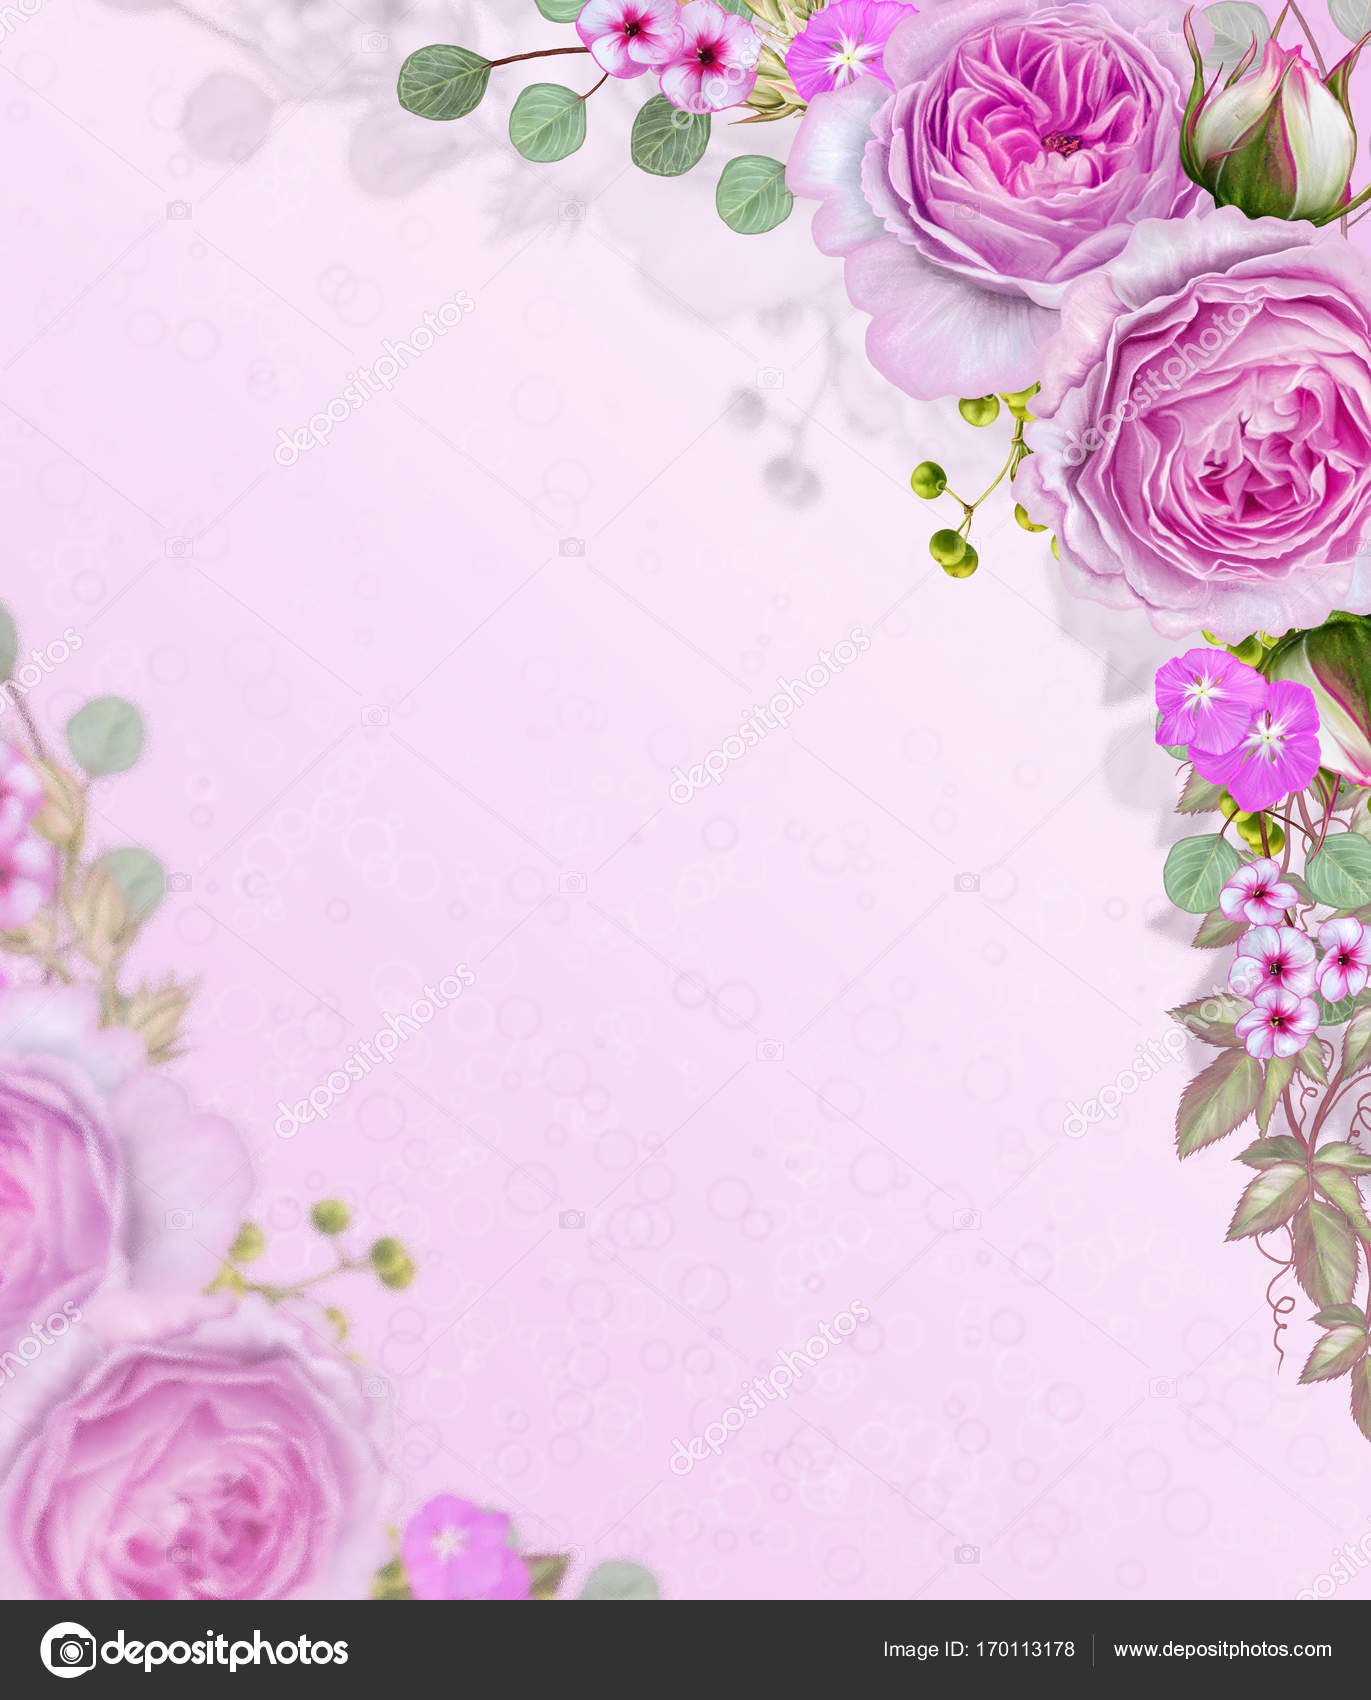 Floral Background Garland Of Flowers Tender Pink Roses Berries